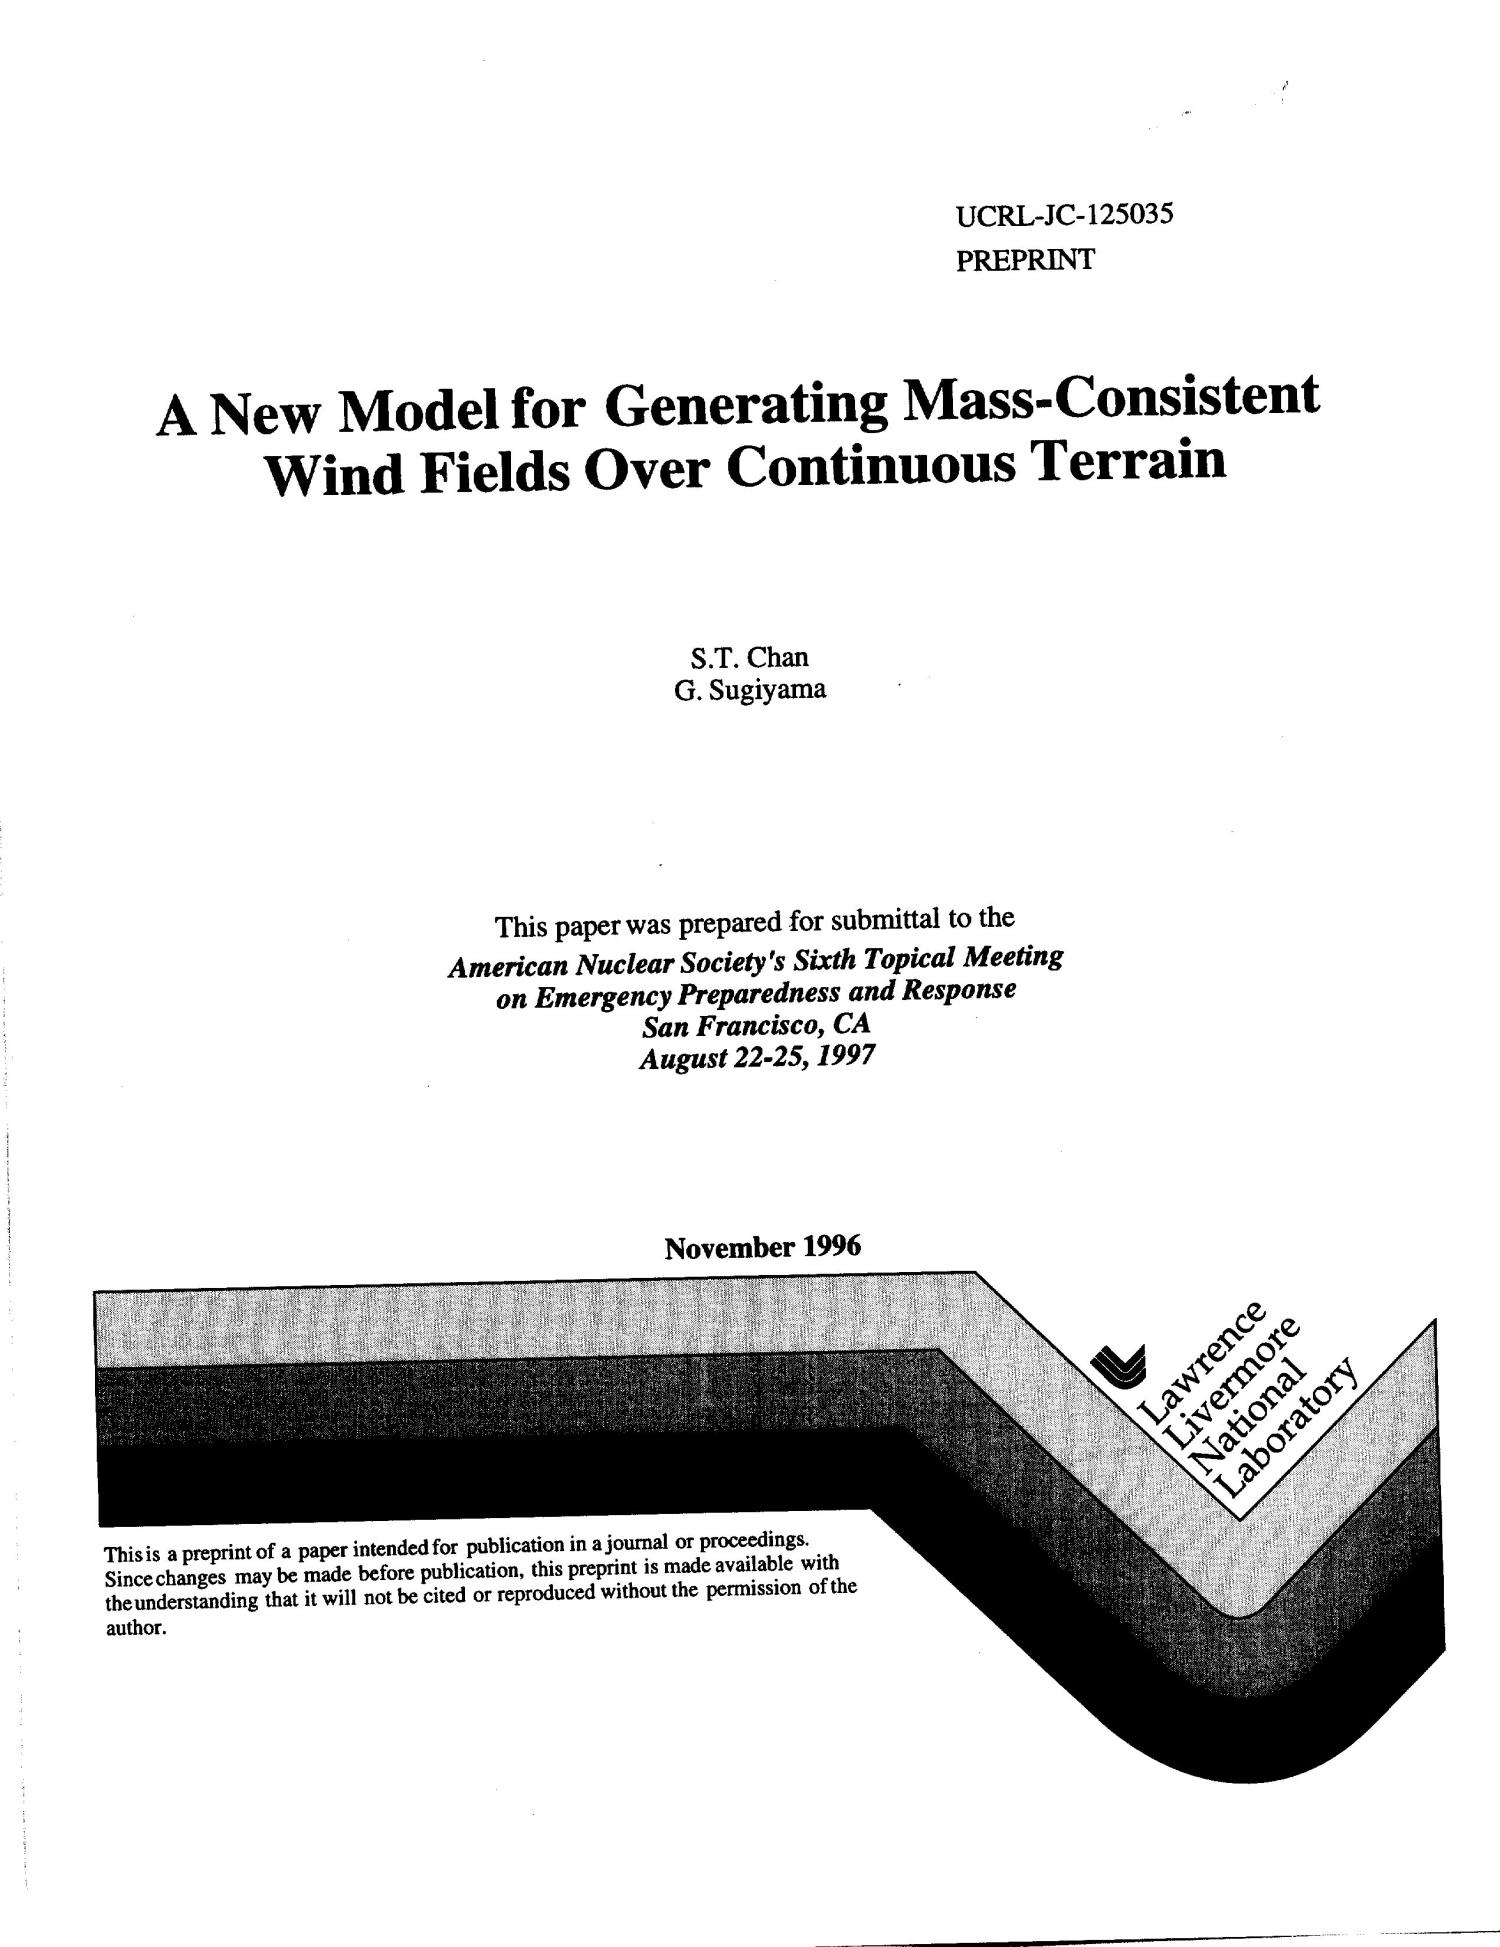 New model for generating mass-consistent wind fields over continuous terrain                                                                                                      [Sequence #]: 1 of 7